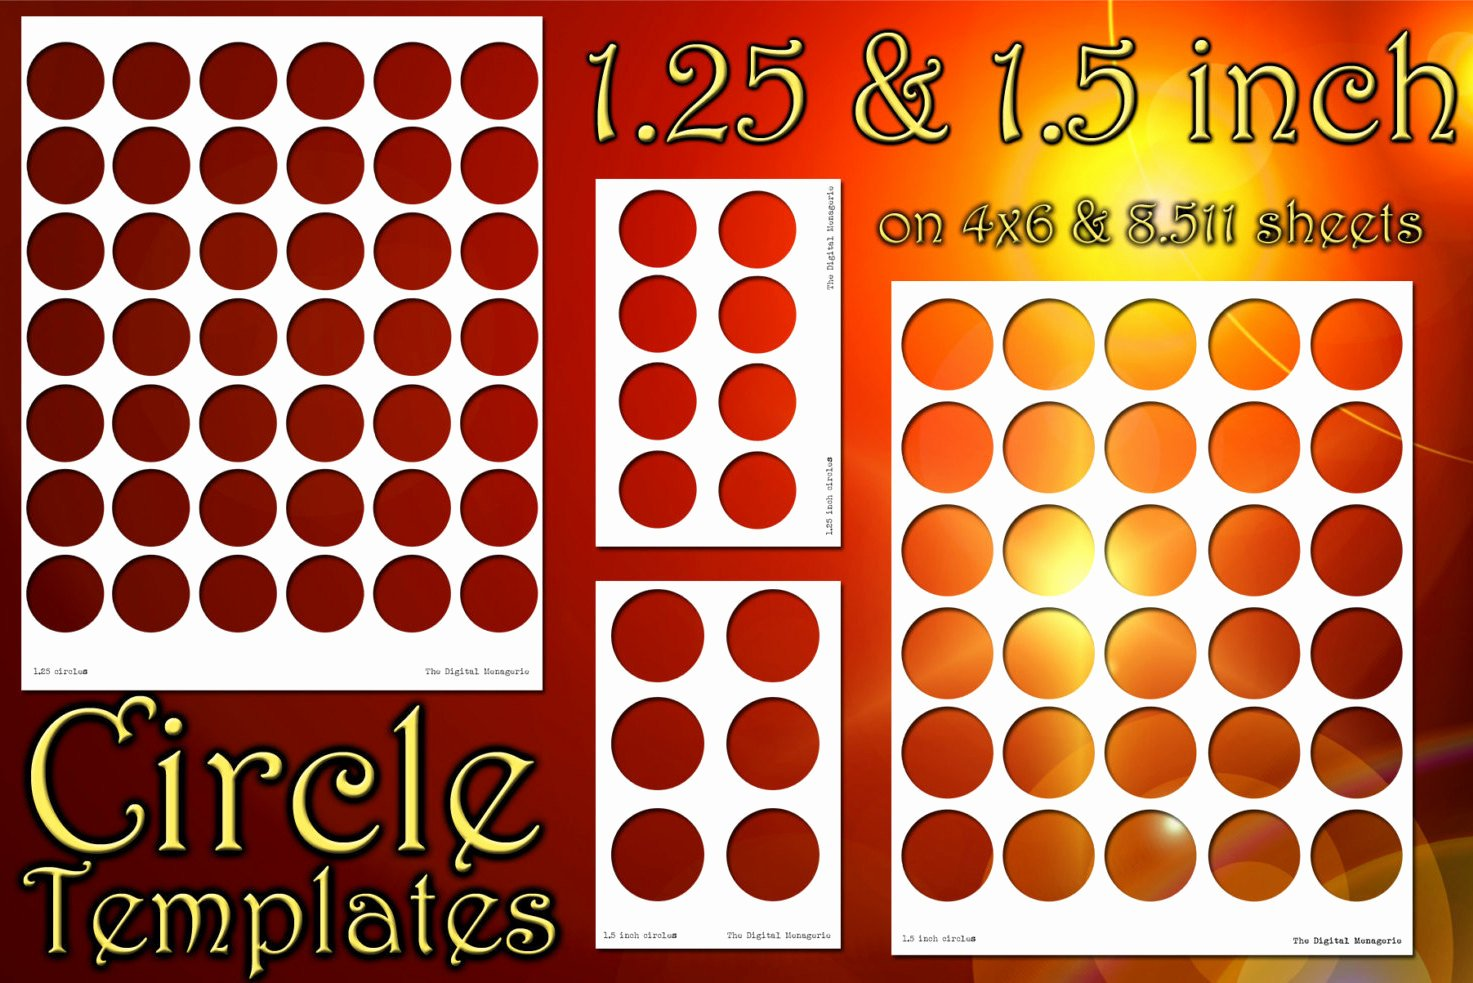 One Inch Circle Template Luxury 1 25 & 1 5 Inch Circle Templates 4x6 8 5x11 Sheets Png